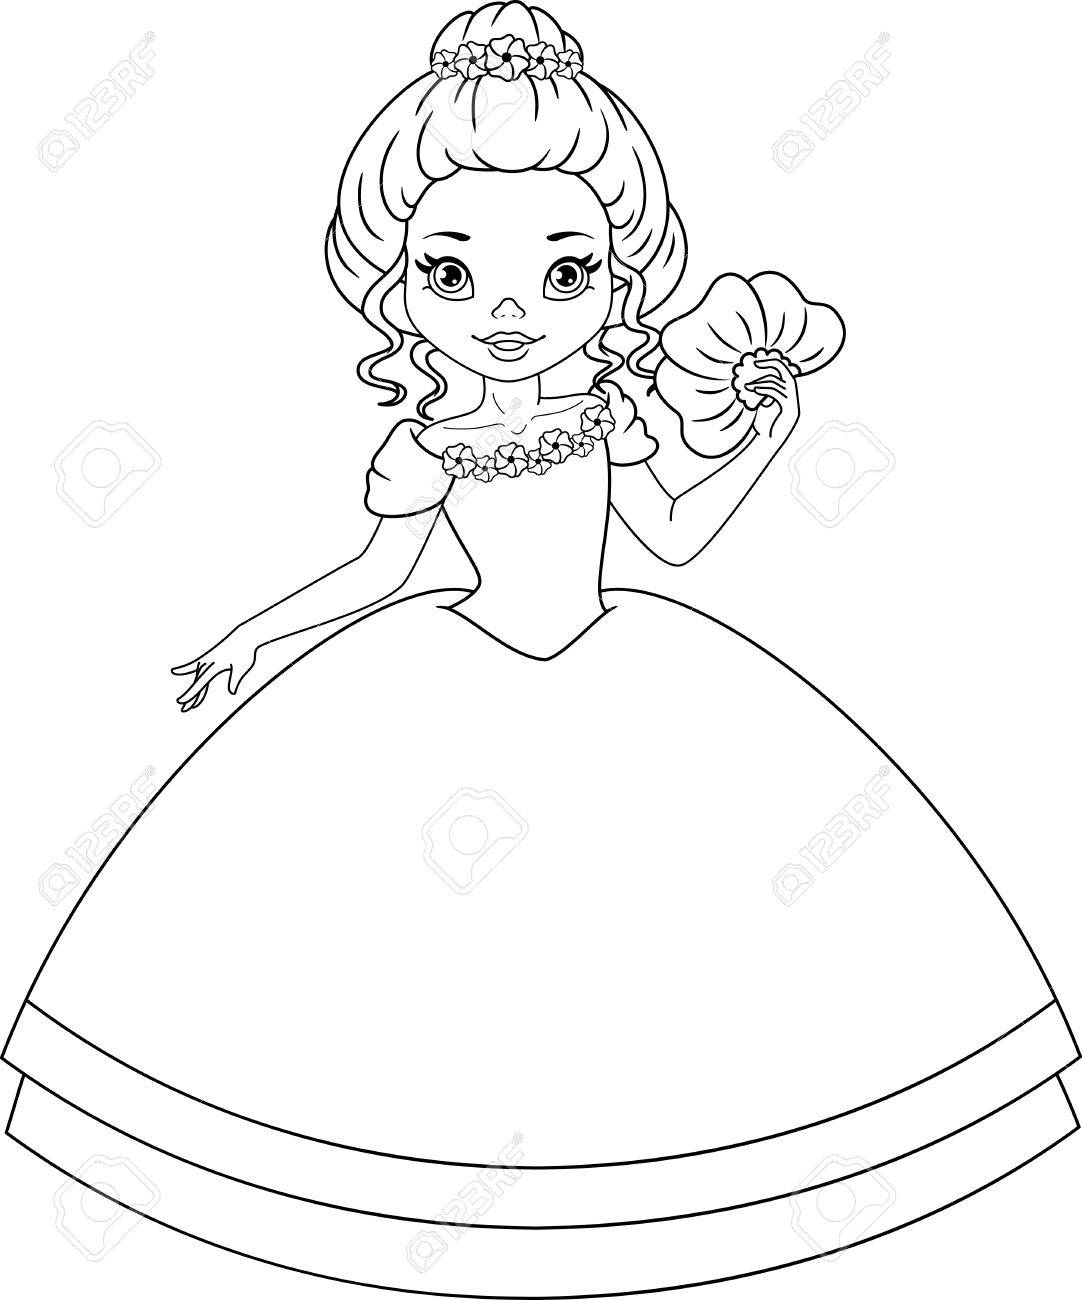 Princess Violet Coloring Page Royalty Free Klipartlar Vektör